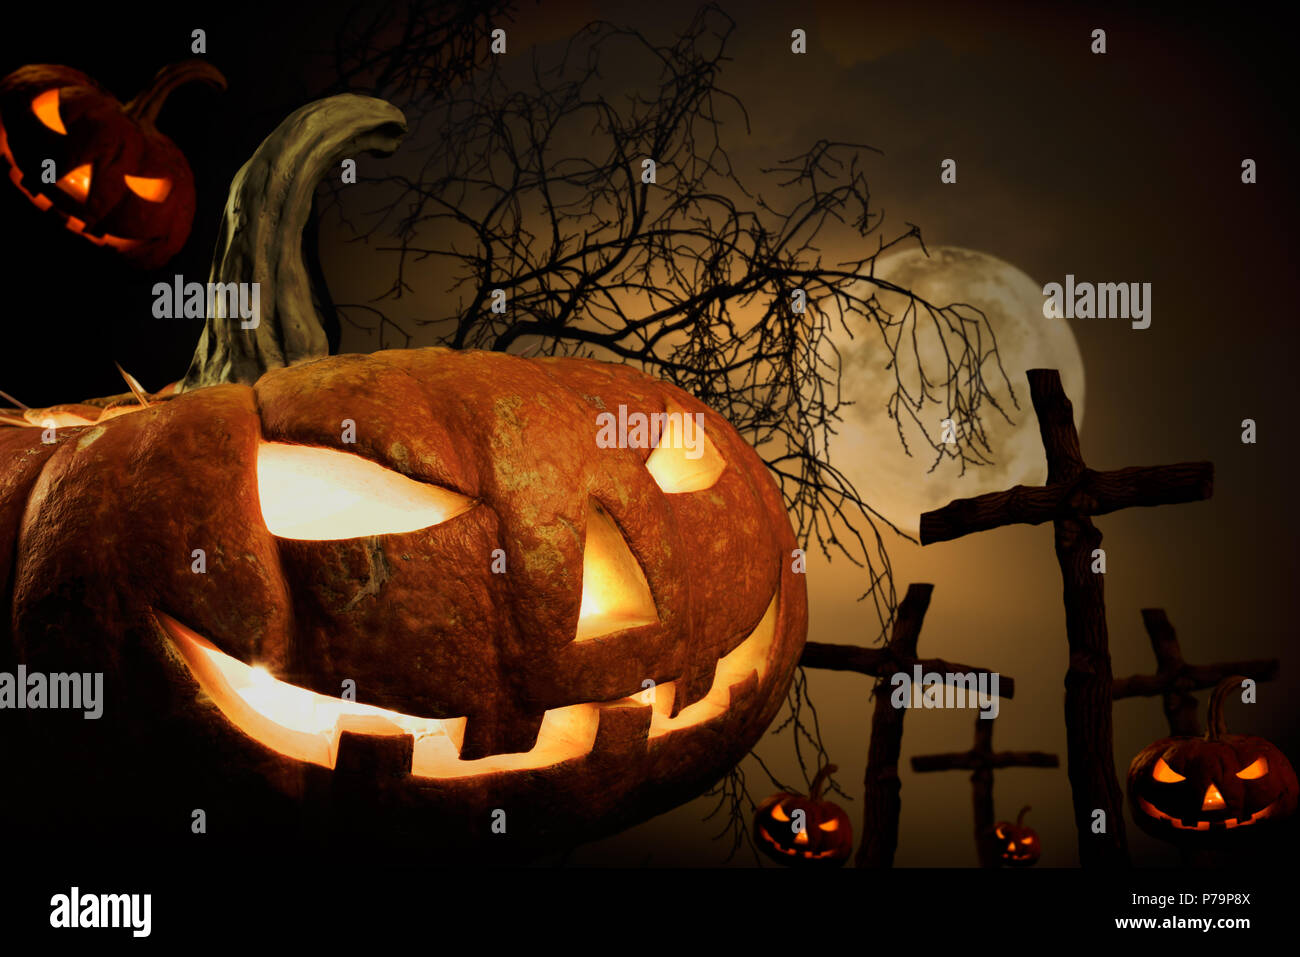 many pumpkin on burying place, concept  religious  feast  Halloween - Stock Image